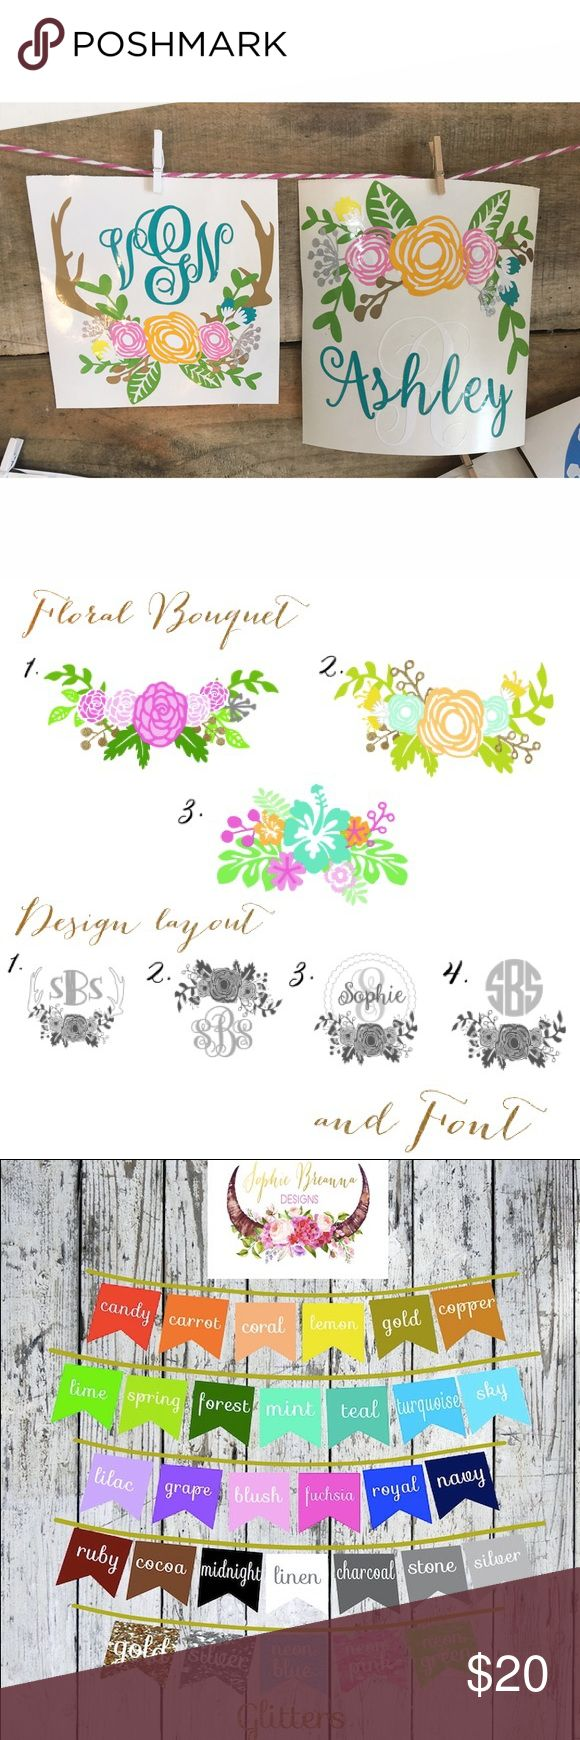 "Monogram Floral Decal Sticker Customizable floral DecalSticker. 3.5"" decal made out of permanent vinyl. Perfect for cups, cars, coolers etc. Please DO NOT purchase this listing I will make a custom listing for you. Just comment below if you'd like to purchase one, what style you'd like, your initials (first, last, middle) & the color of vinyl for your initials!! You can always email me at sophiebreanna@gmail.com if you have any questions!! Other"